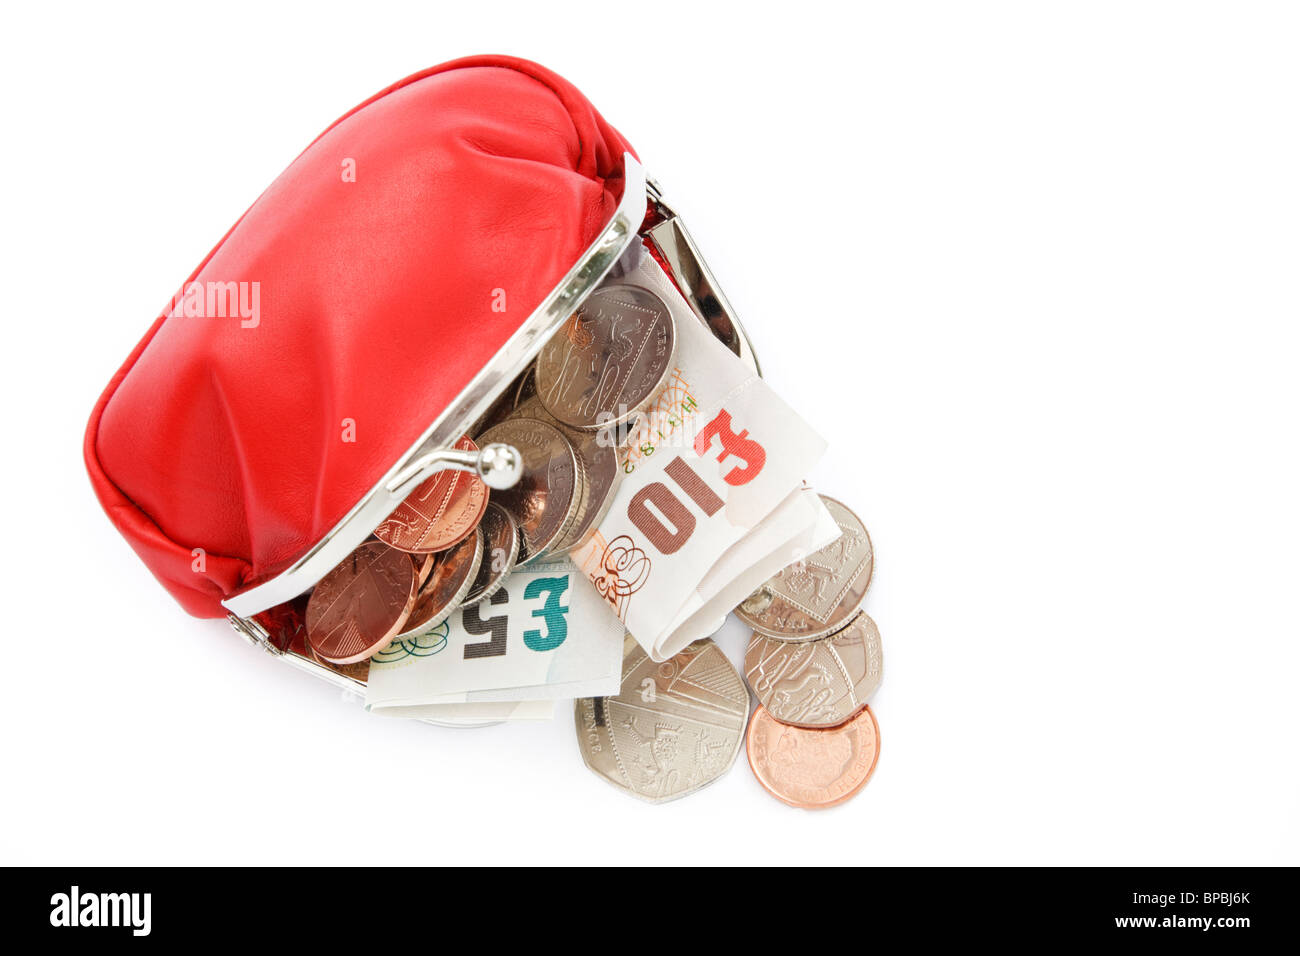 Isolated open red coin sterling money purse containing ten and five British pound notes GBP with some cash coins - Stock Image